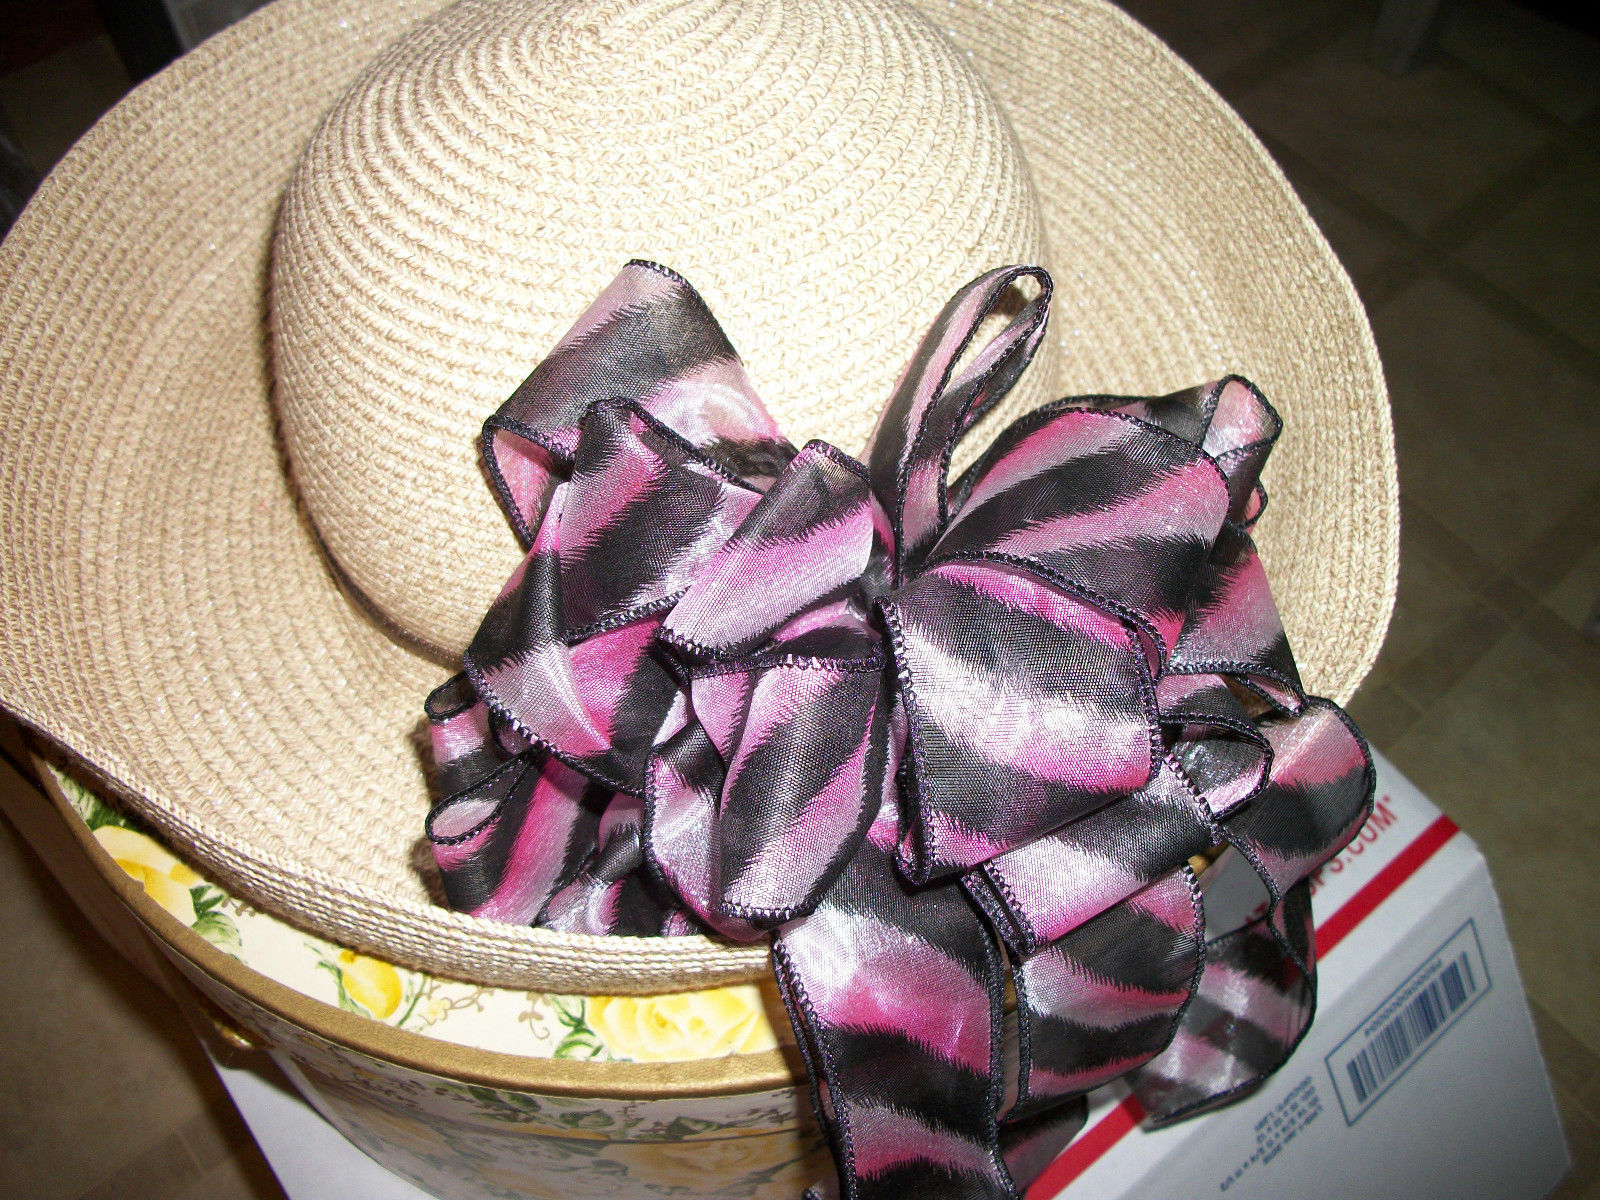 fed7f29835a3b Betmar Women s Wide Brimmed Straw Sun Hat and 17 similar items